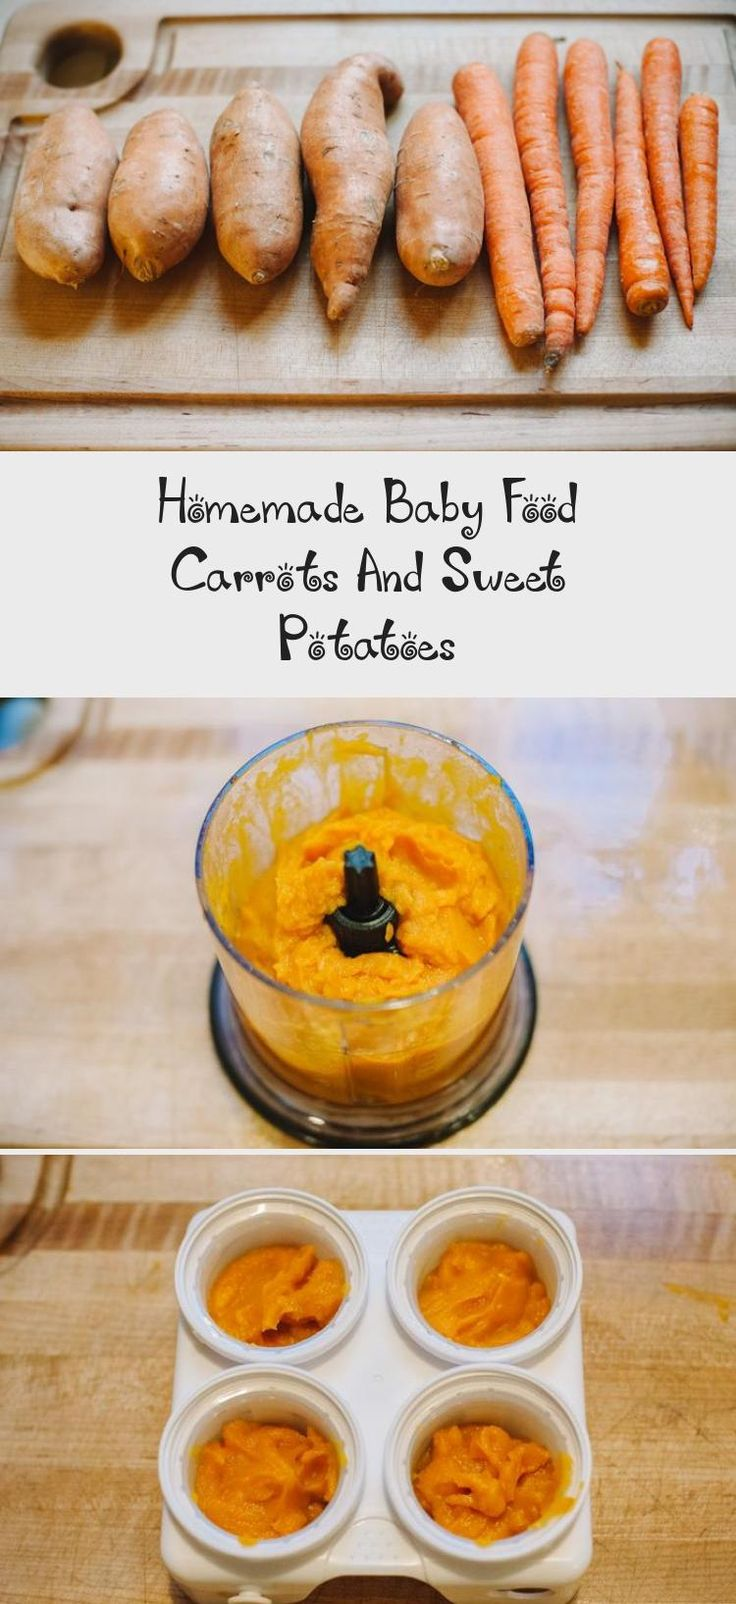 Homemade Baby Food Carrots And Sweet Potatoes   Baby food ...